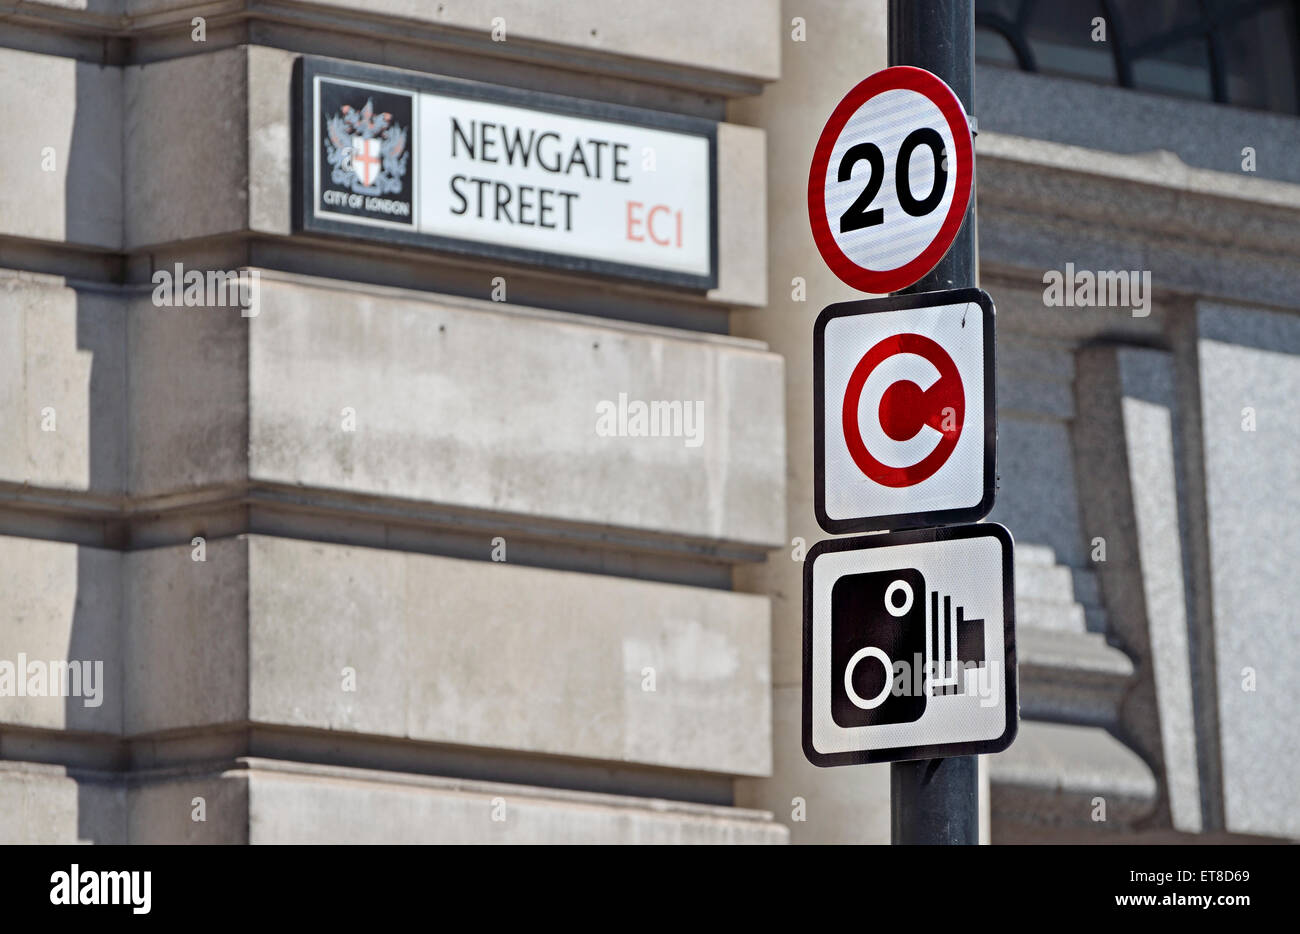 London, England, UK. Traffic signs in Newgate Street - 20 mph limit; congestion zone; speed cameras. - Stock Image